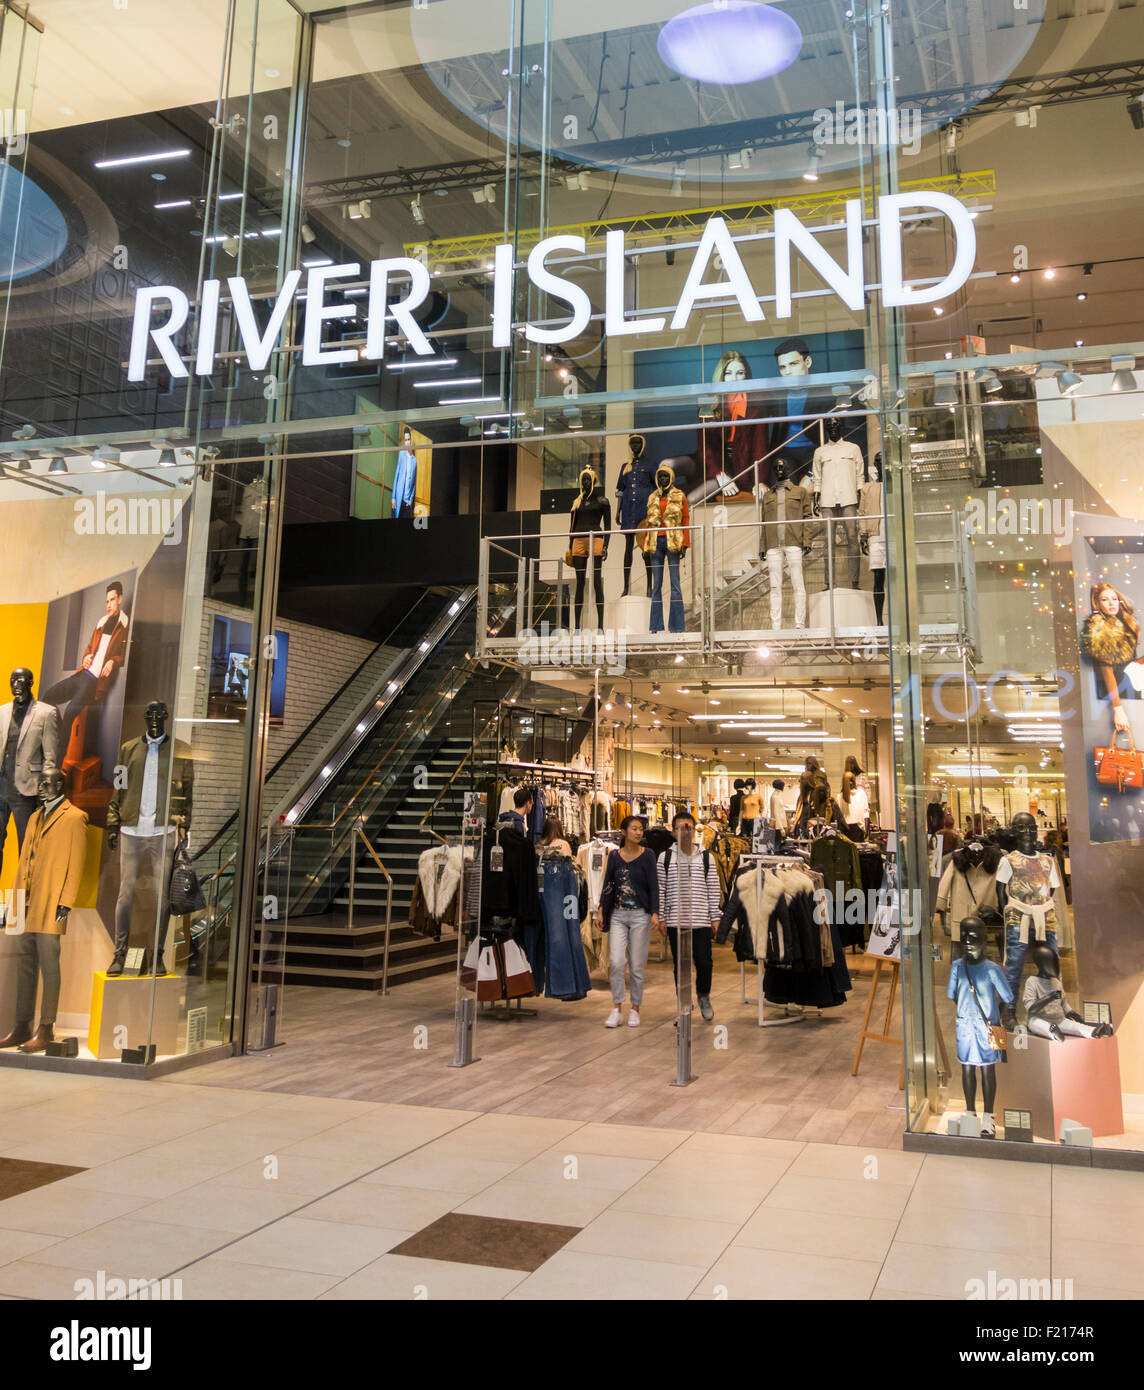 River island new pictures